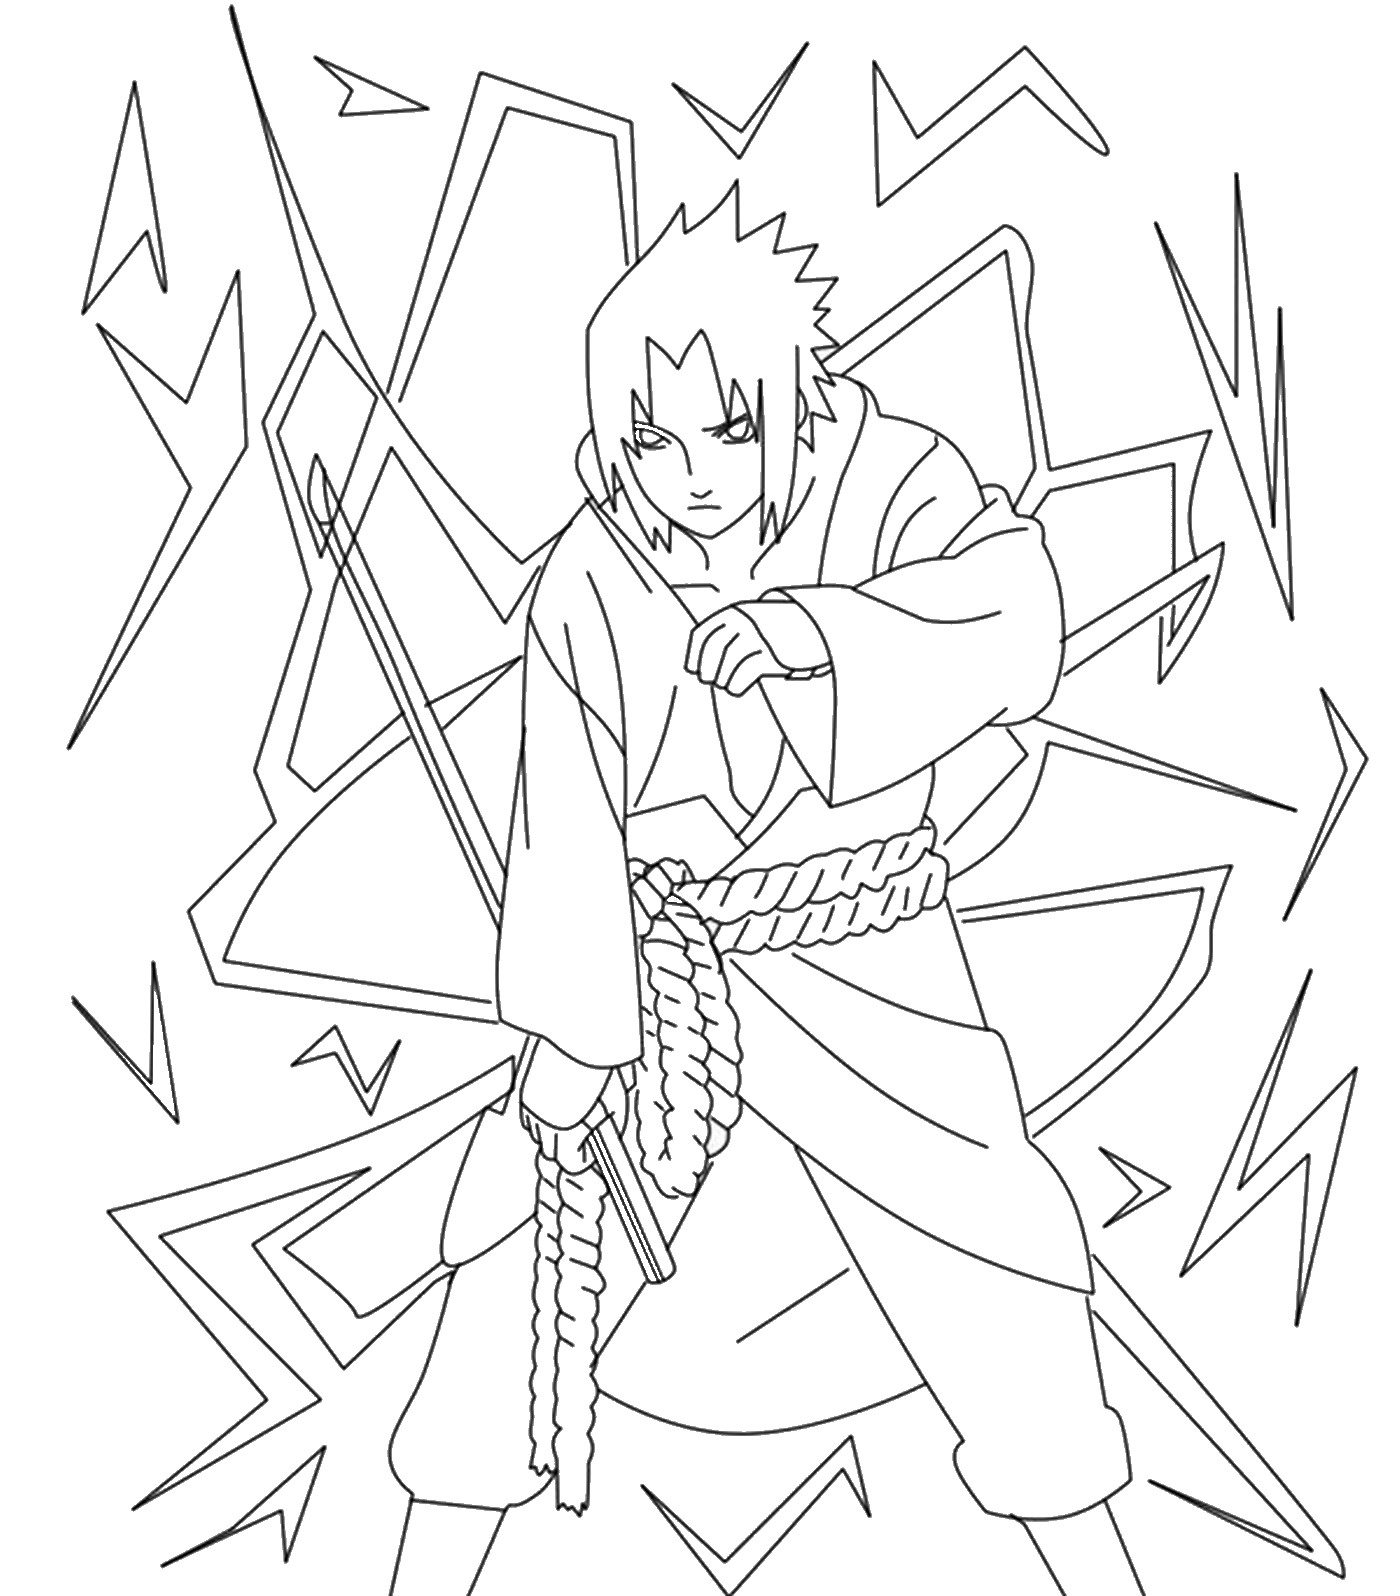 naruto coloring sheets free printable naruto coloring pages for kids sheets coloring naruto